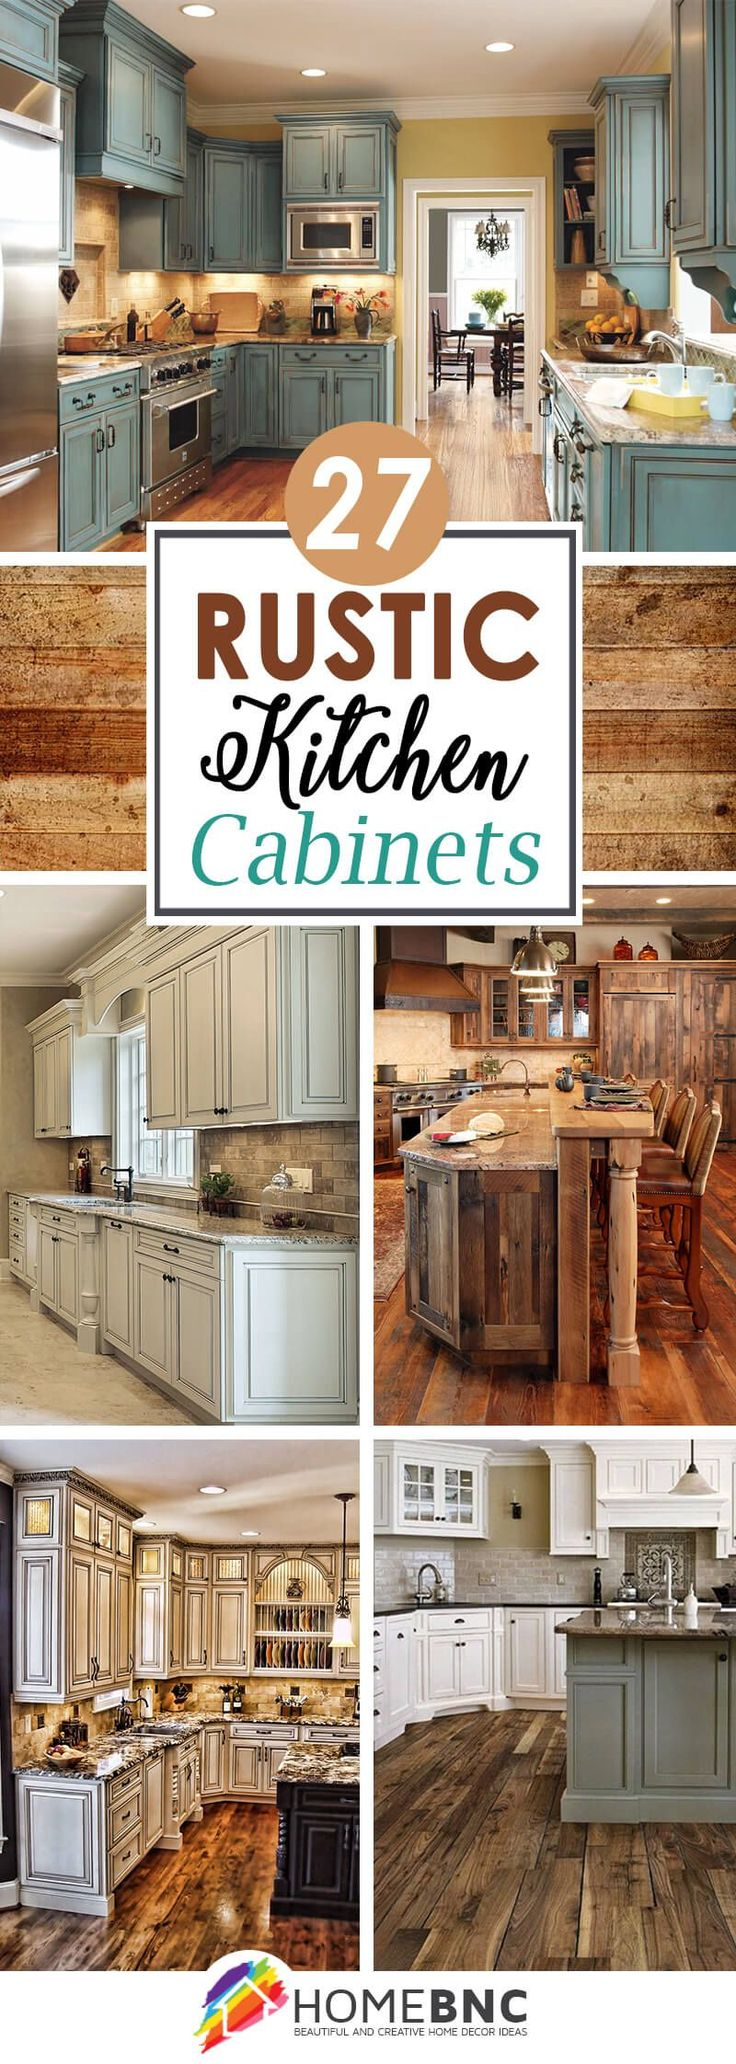 rustic kitchen cabinet designs. 27 Cabinets for the Rustic Kitchen of Your Dreams Best 25  cabinets ideas on Pinterest Country kitchen